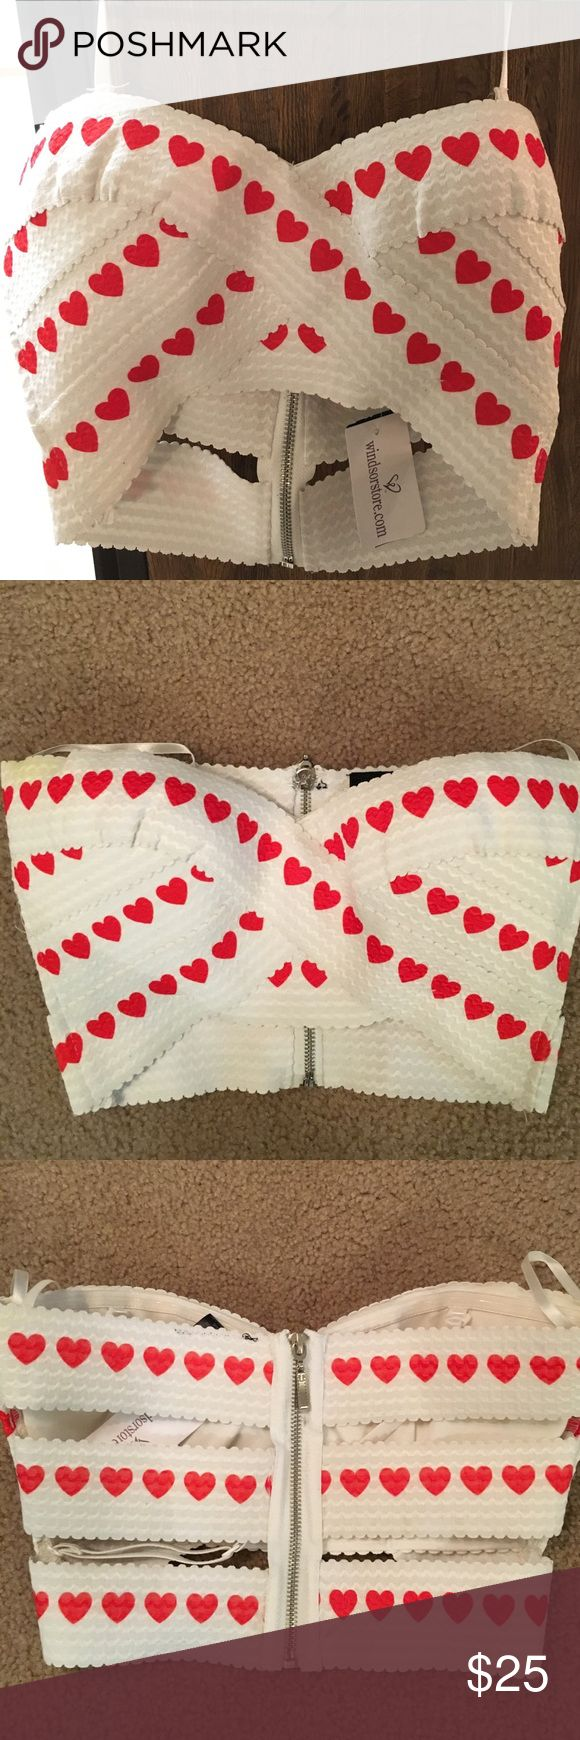 Heart tube top White crop tube top with red hearts. Can be worn as a halter top. Zipper in the back. WINDSOR Tops Crop Tops